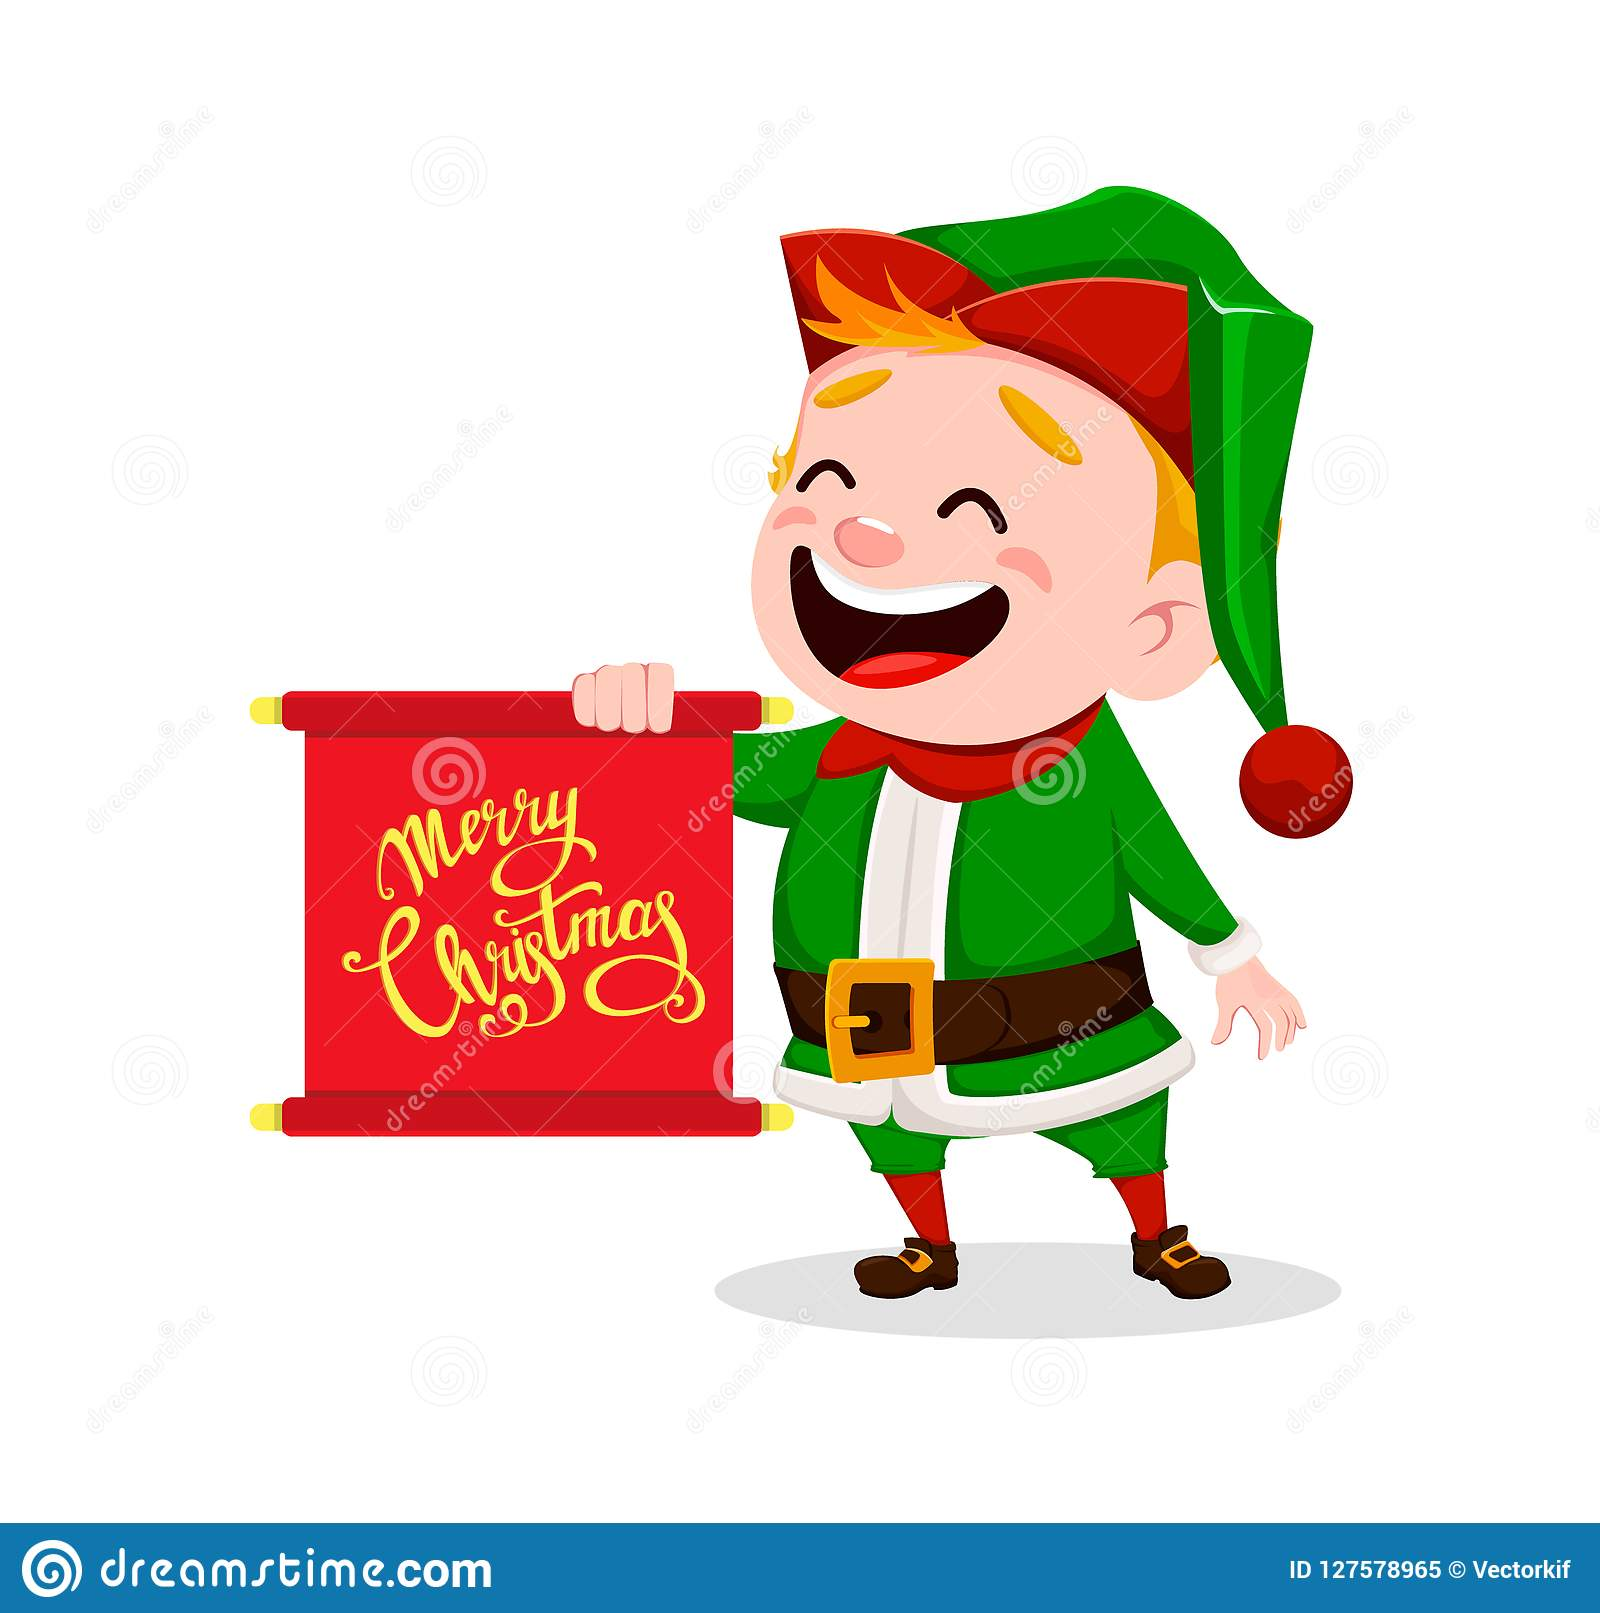 Merry Christmas Funny Images.Merry Christmas Funny Santa Claus Helper Stock Vector